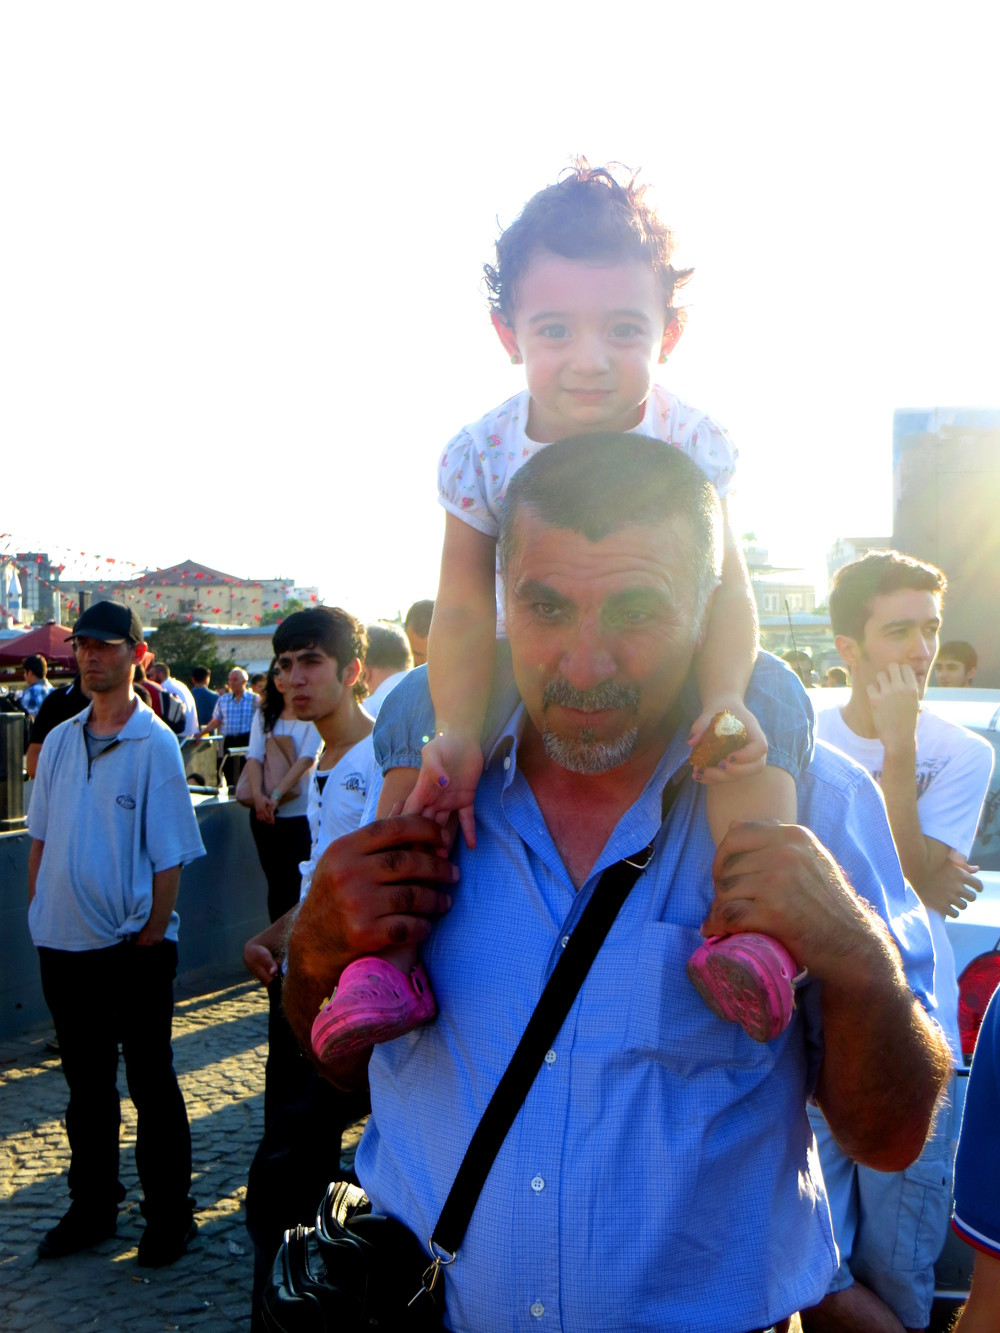 A father brings his young daughter to the standing protests.